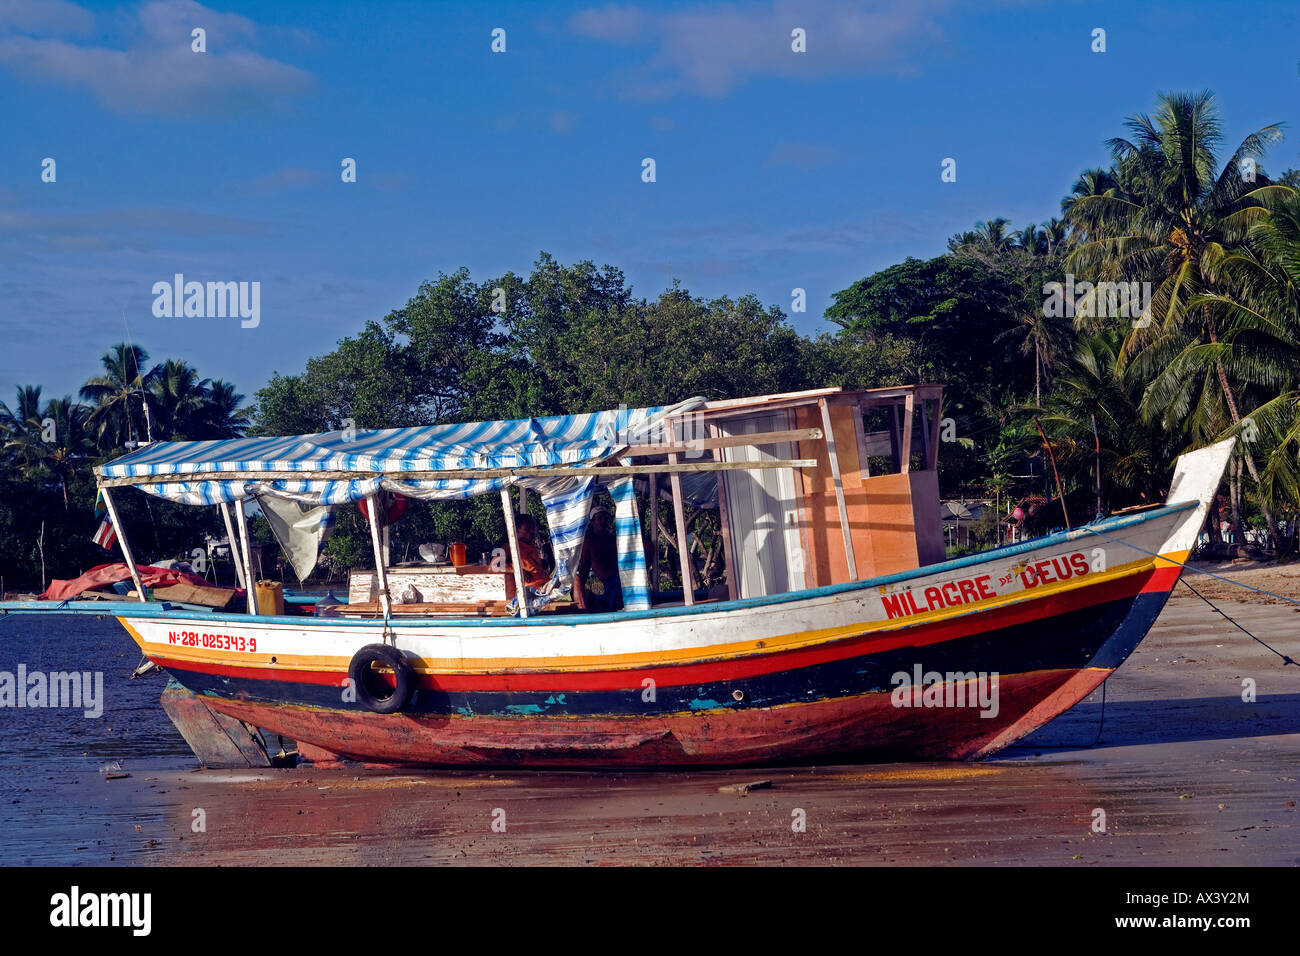 Brazil, Bahia, Boipeba Island. A ferry boat connecting the islands is moored on the beach in front of palm trees. Stock Photo